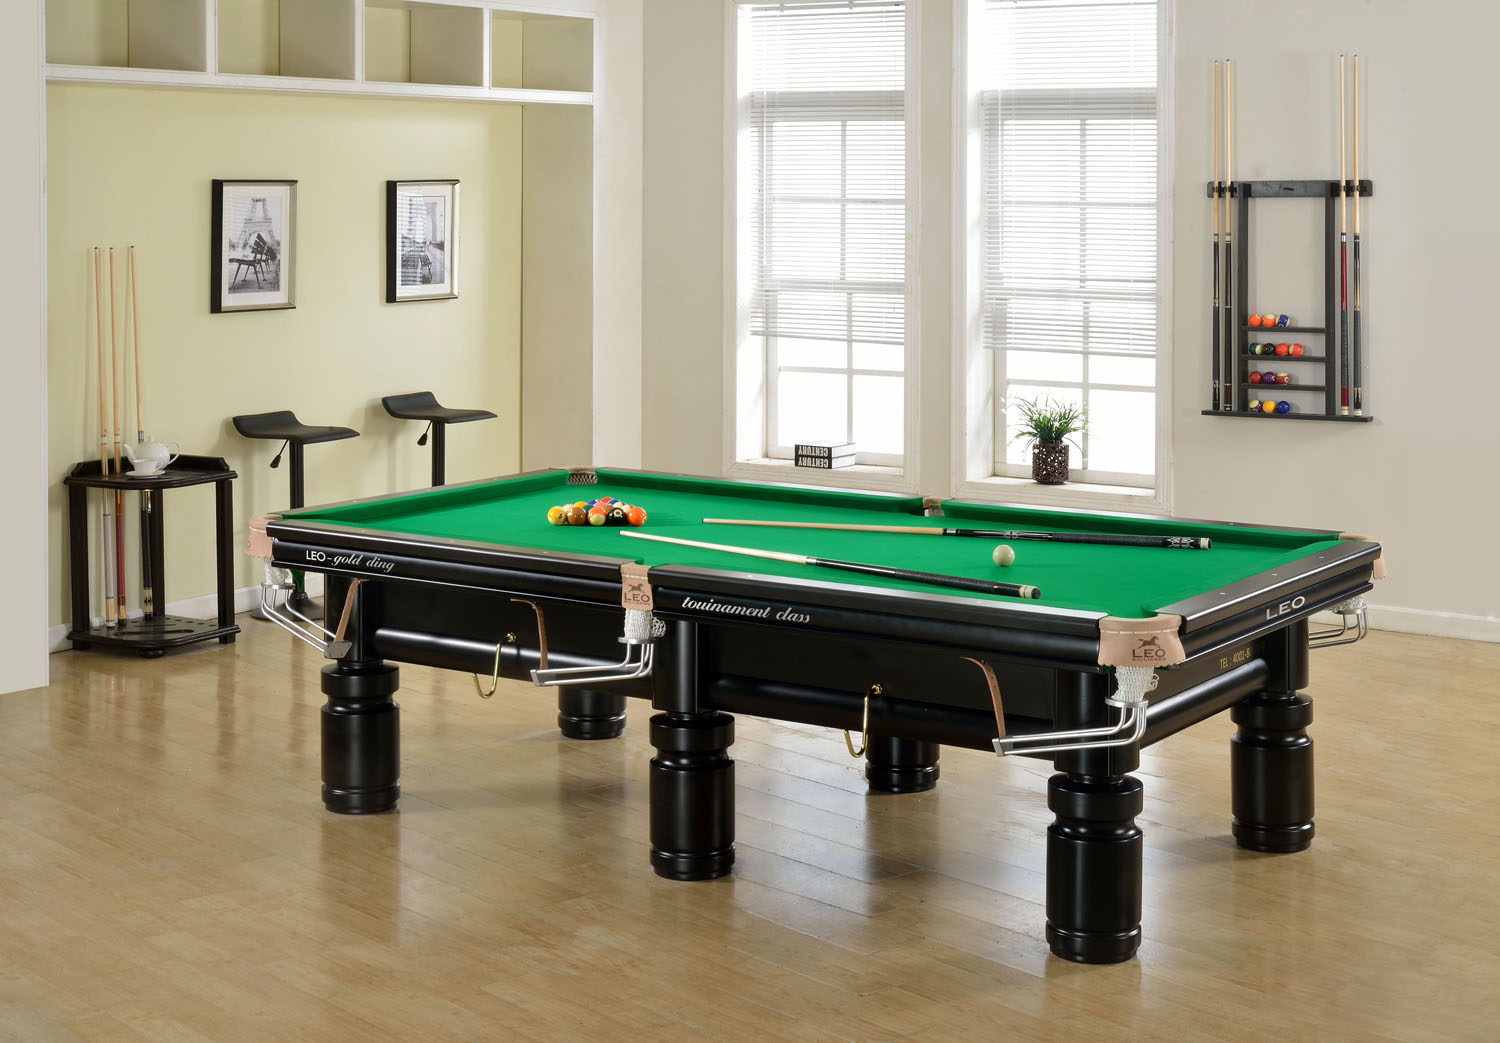 http://www.legobilliards.com.cn/upload/images/201506/14349335608685.jpg